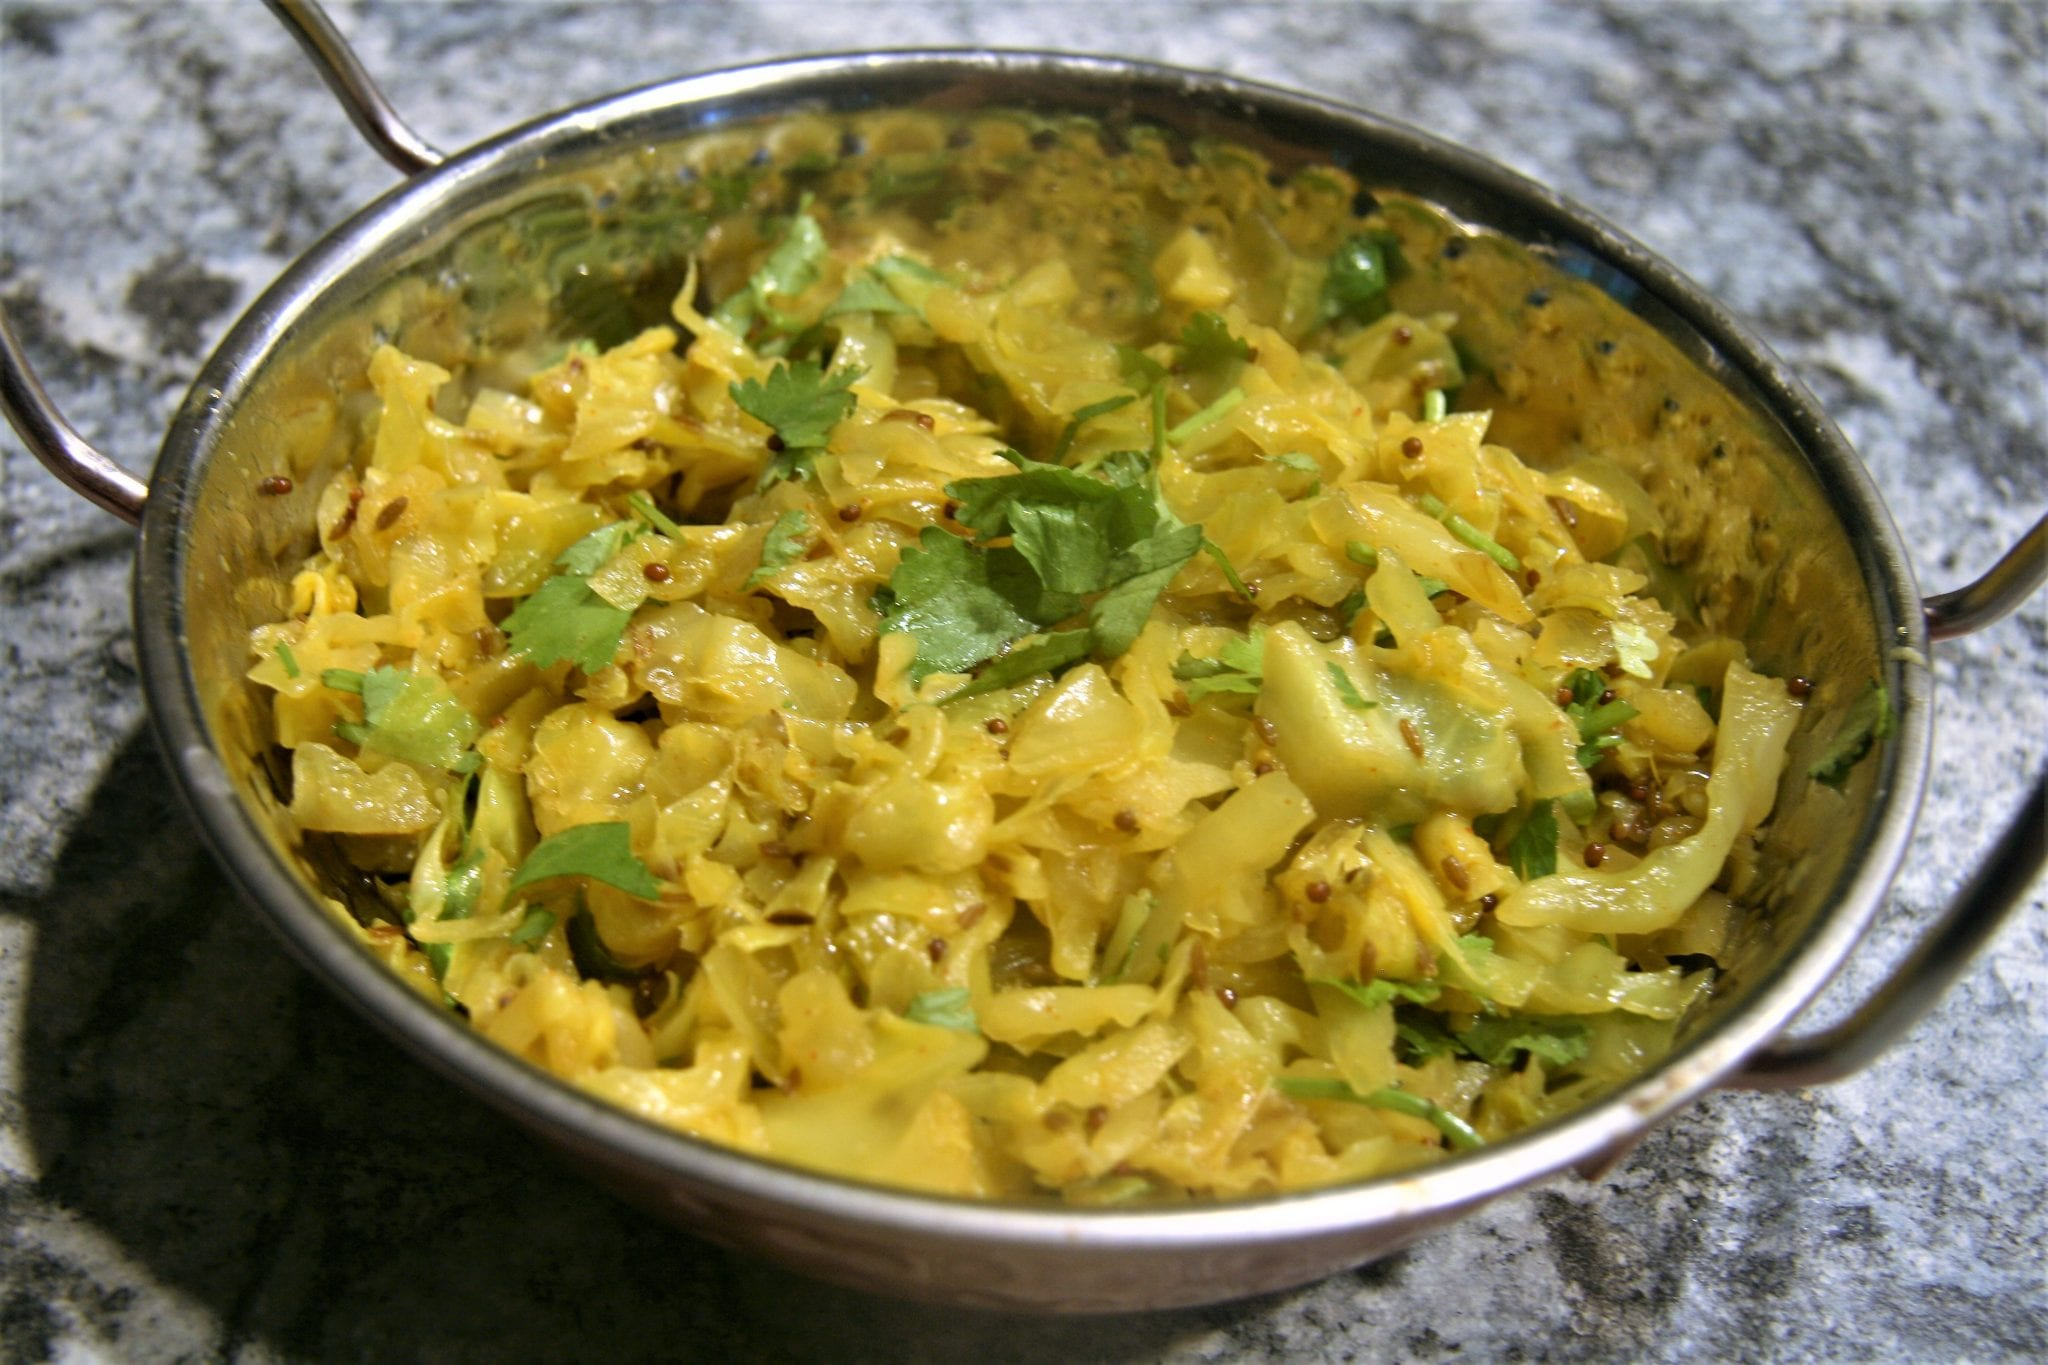 Spicy Cabbage Sabzi in a metal serving bowl